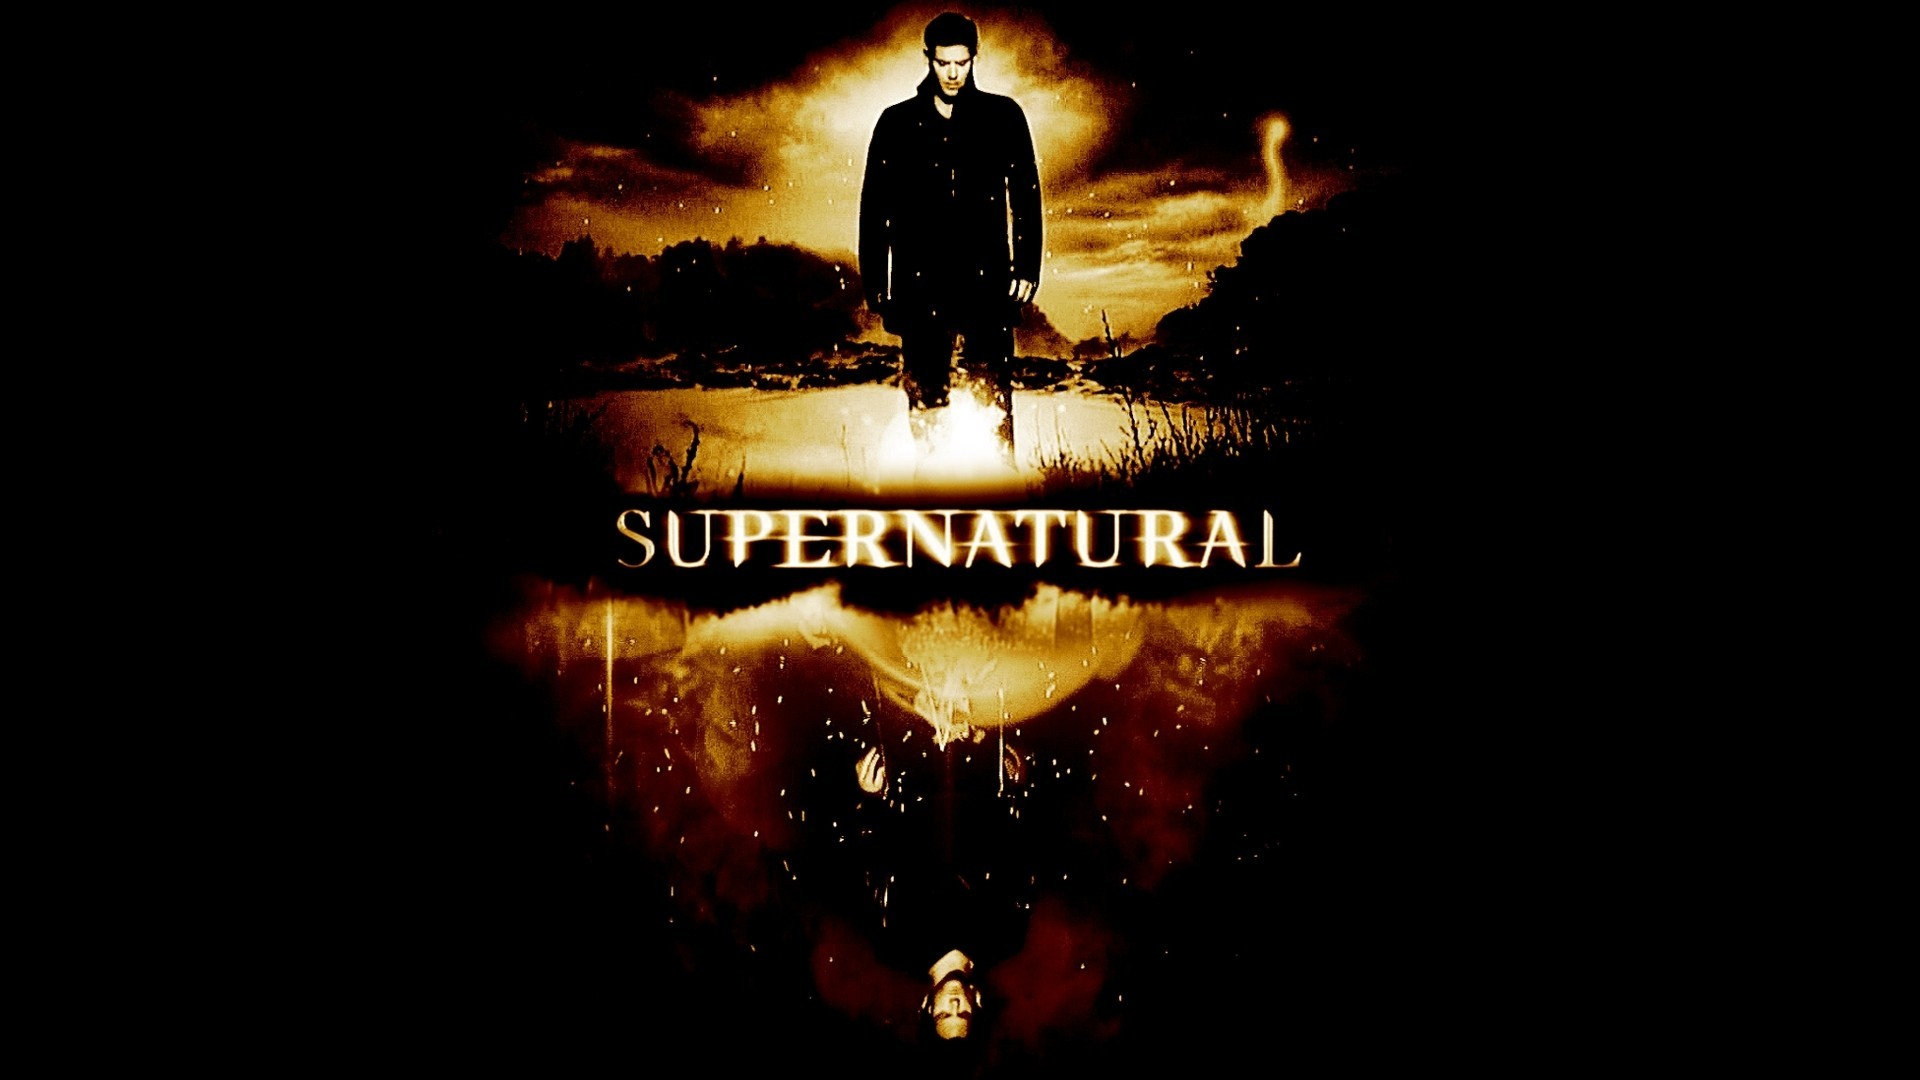 Other Resolution: Unpredicted Supernaturak Dark Magic Man Backgrounds Movie for Iphone Hd Wallpapers